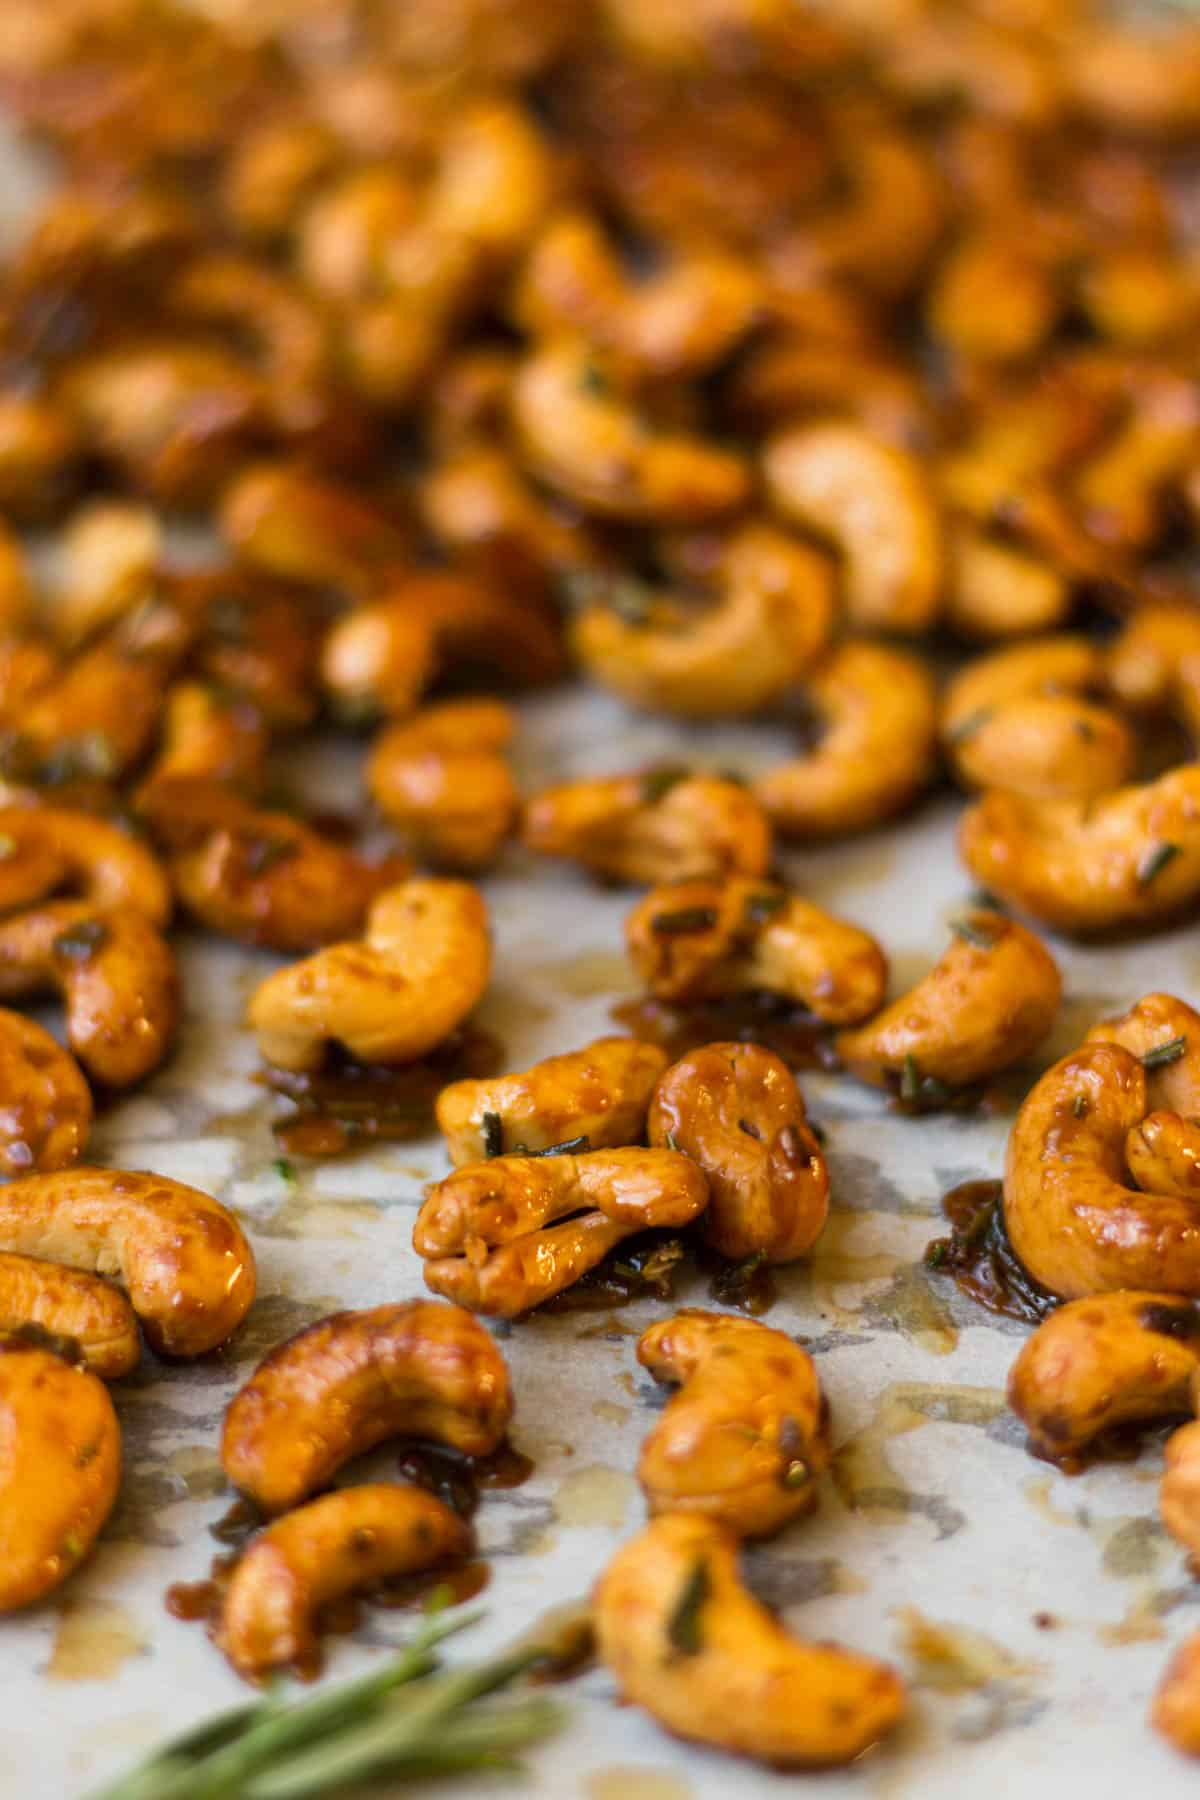 These paleo & gluten free Honey Rosemary Roasted Cashews are just 4 ingredients and make an easy appetizer, snack, or homemade present for the holidays - Eat the Gains